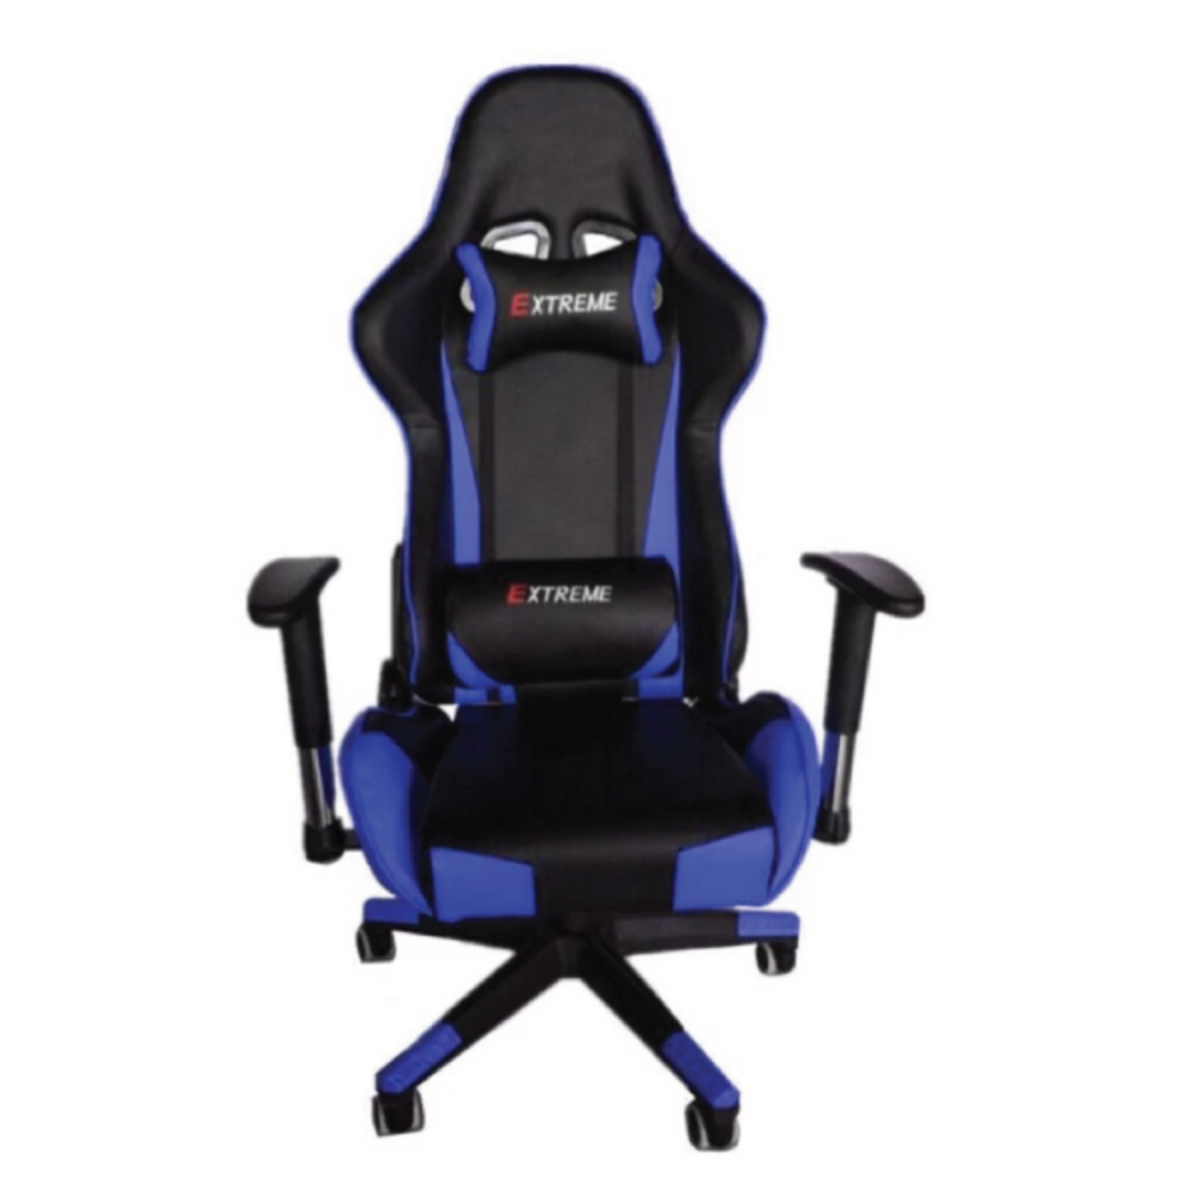 Merveilleux Furniture Farm Extreme PU Leather Gaming Chair